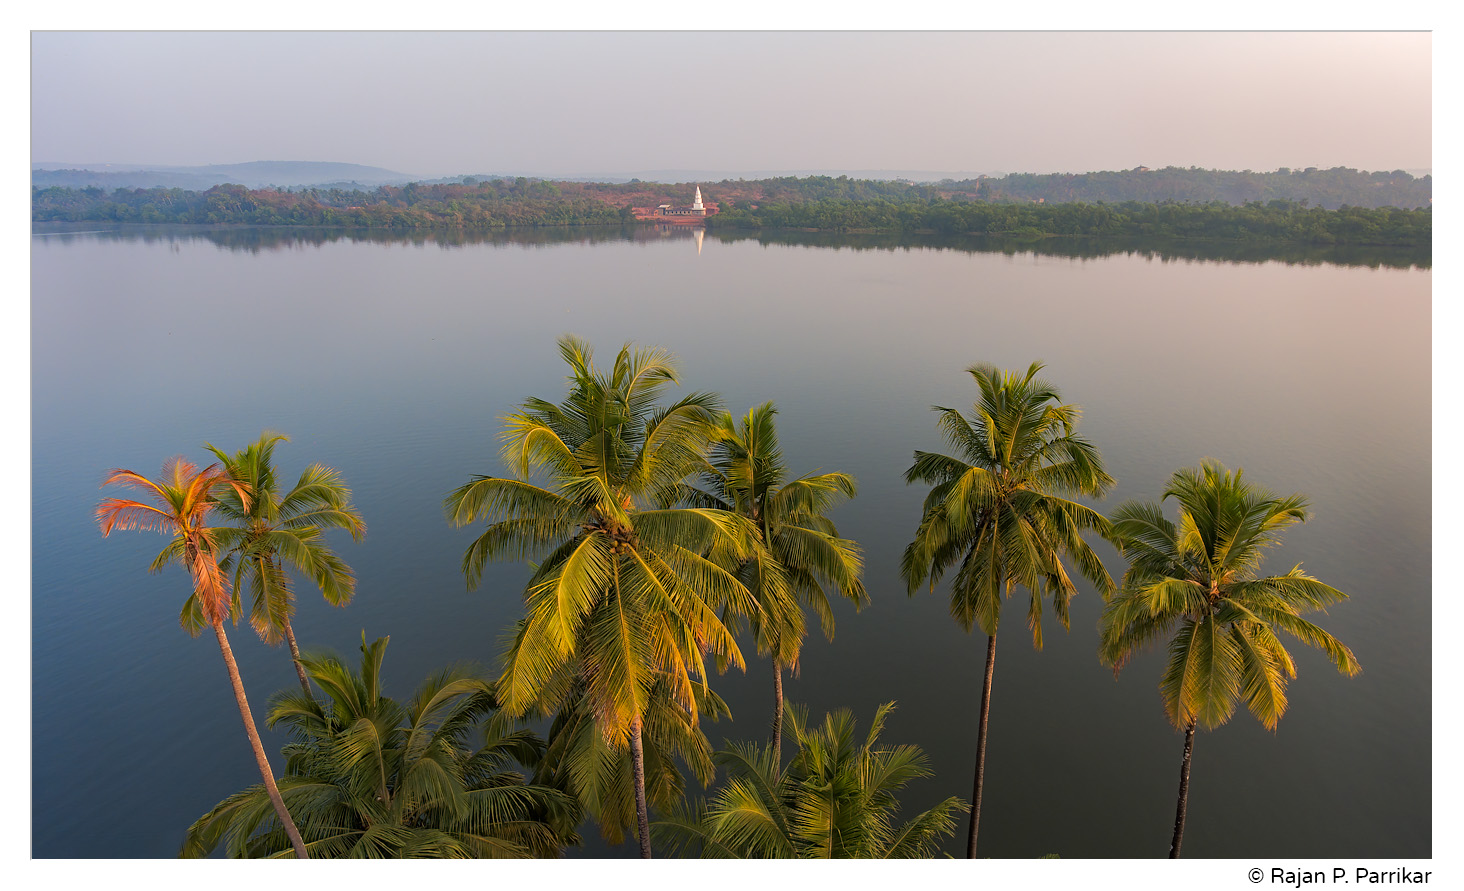 Sateri Temple in Dhargal seen from Colvale, Goa